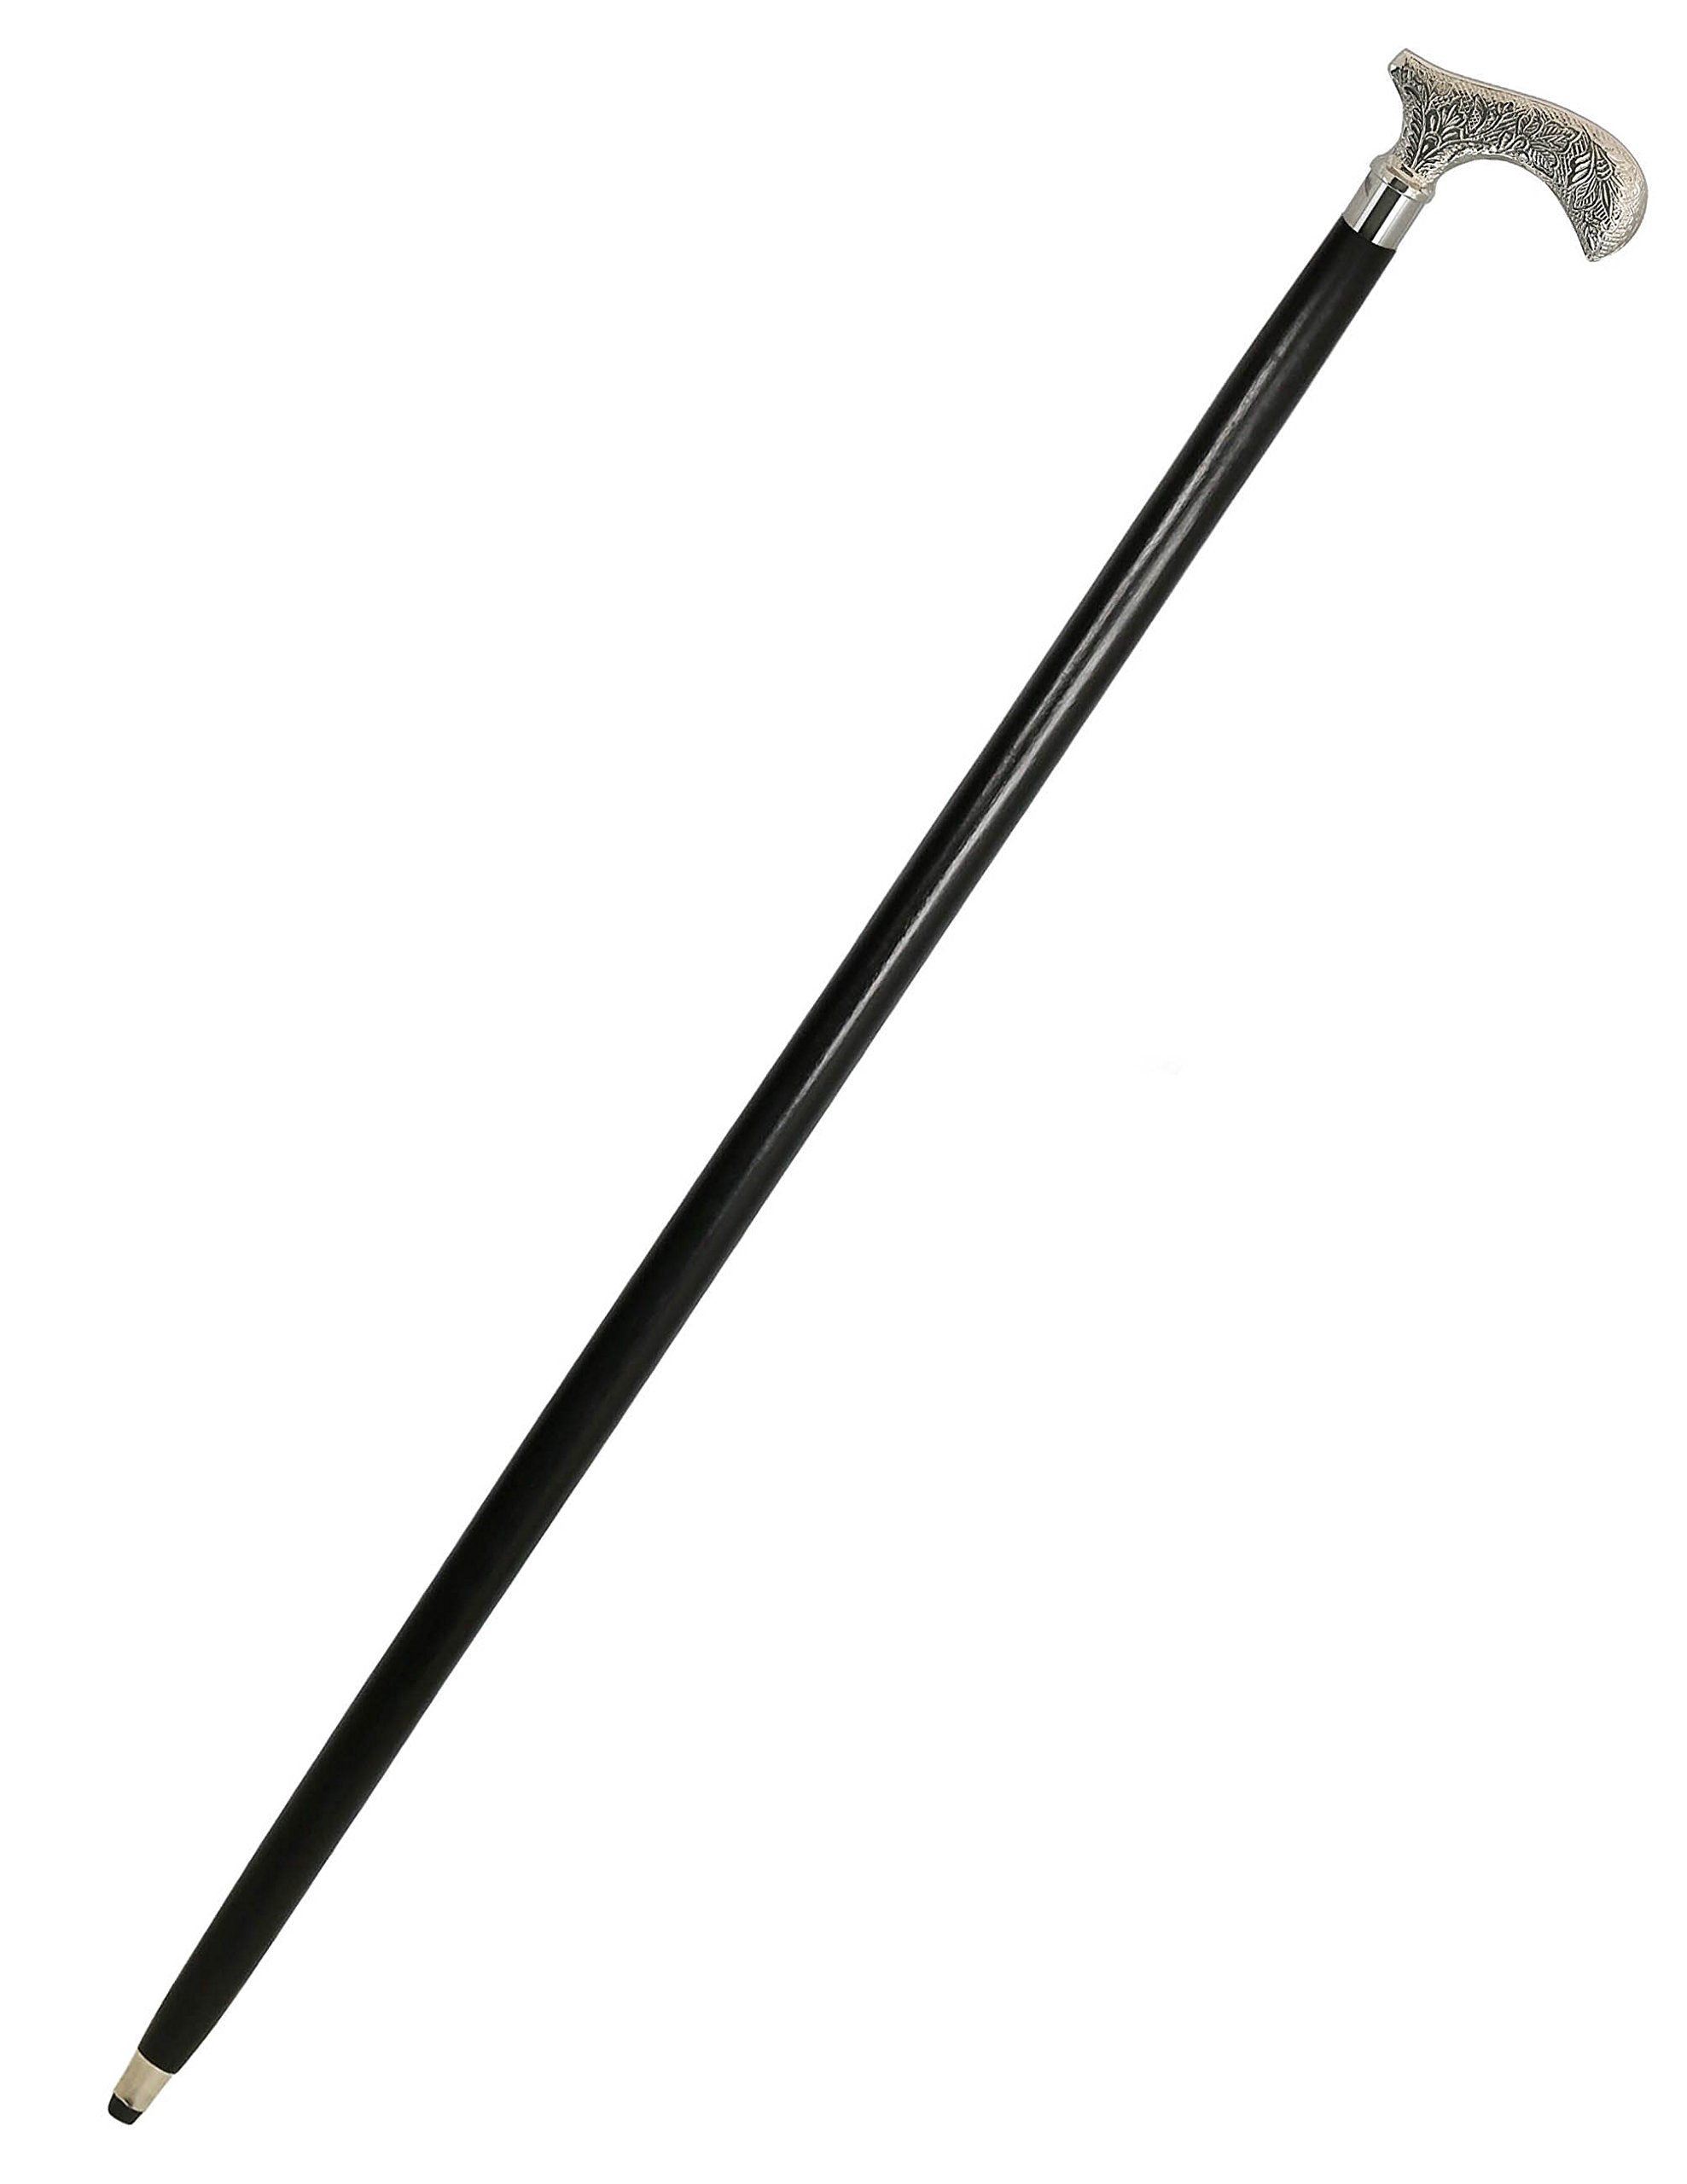 "Handmade 36"" Indian Walking Stick - Wooden Canes and Walking Sticks for Men - Walking Cane with Brass Handle"